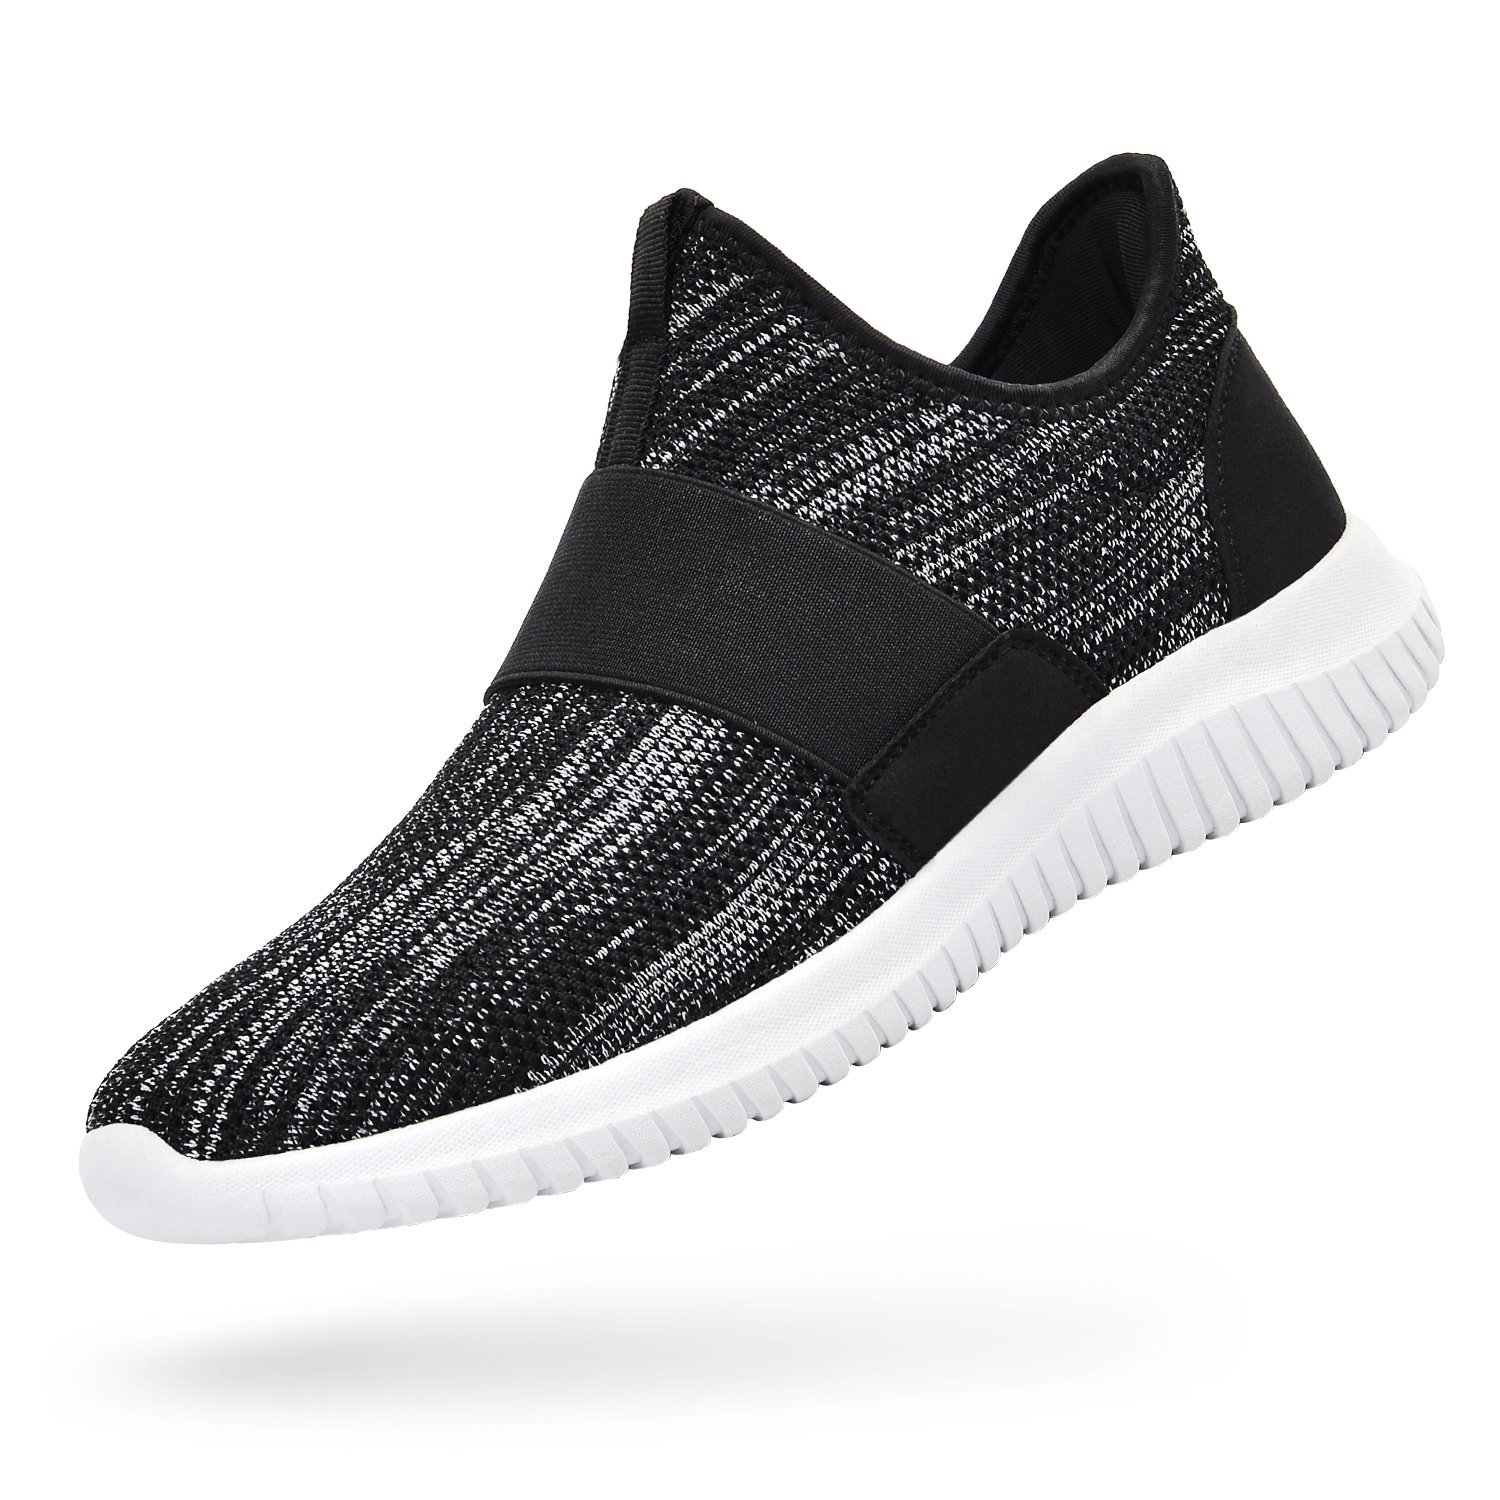 Troadlop Womens Sneakers Lightweight Breathable Mesh Slip On Casual Tennis Shoes Athletic Walking Running Sneakers B07D8VW8VK 6.5 M US|Black-gray